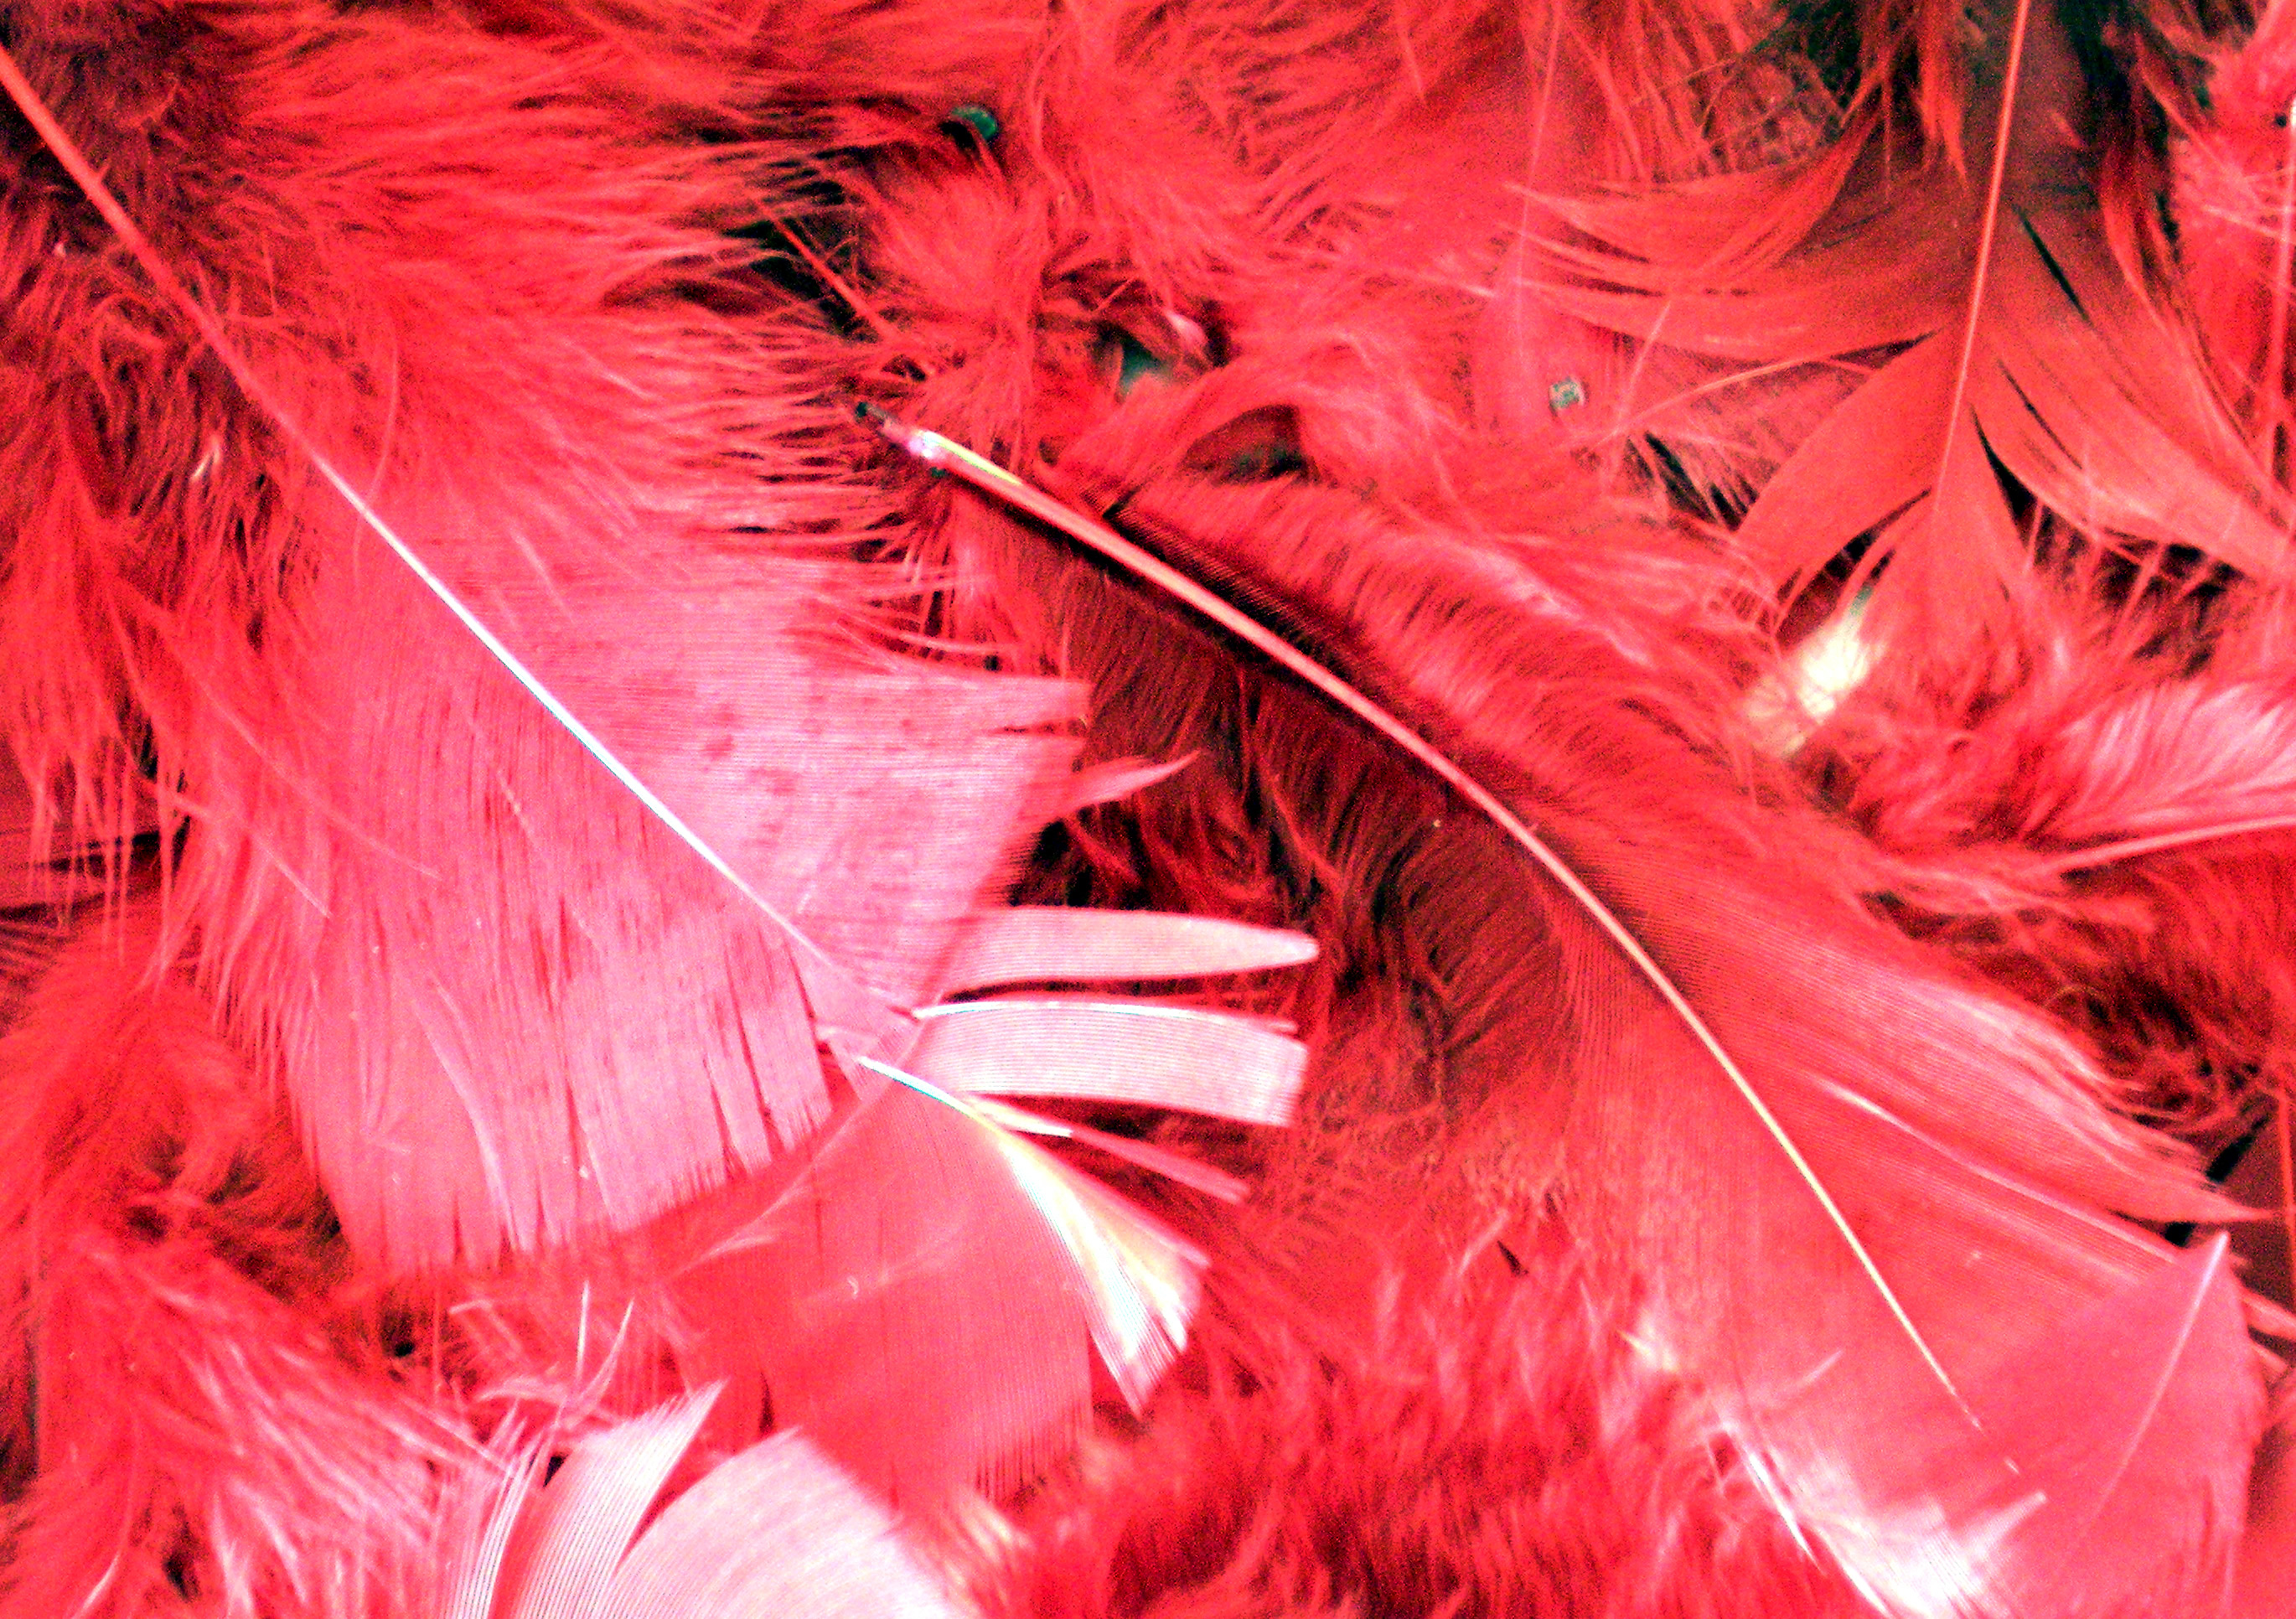 , , texture feather, download background, photo, image, pink flamingo feathre background texture